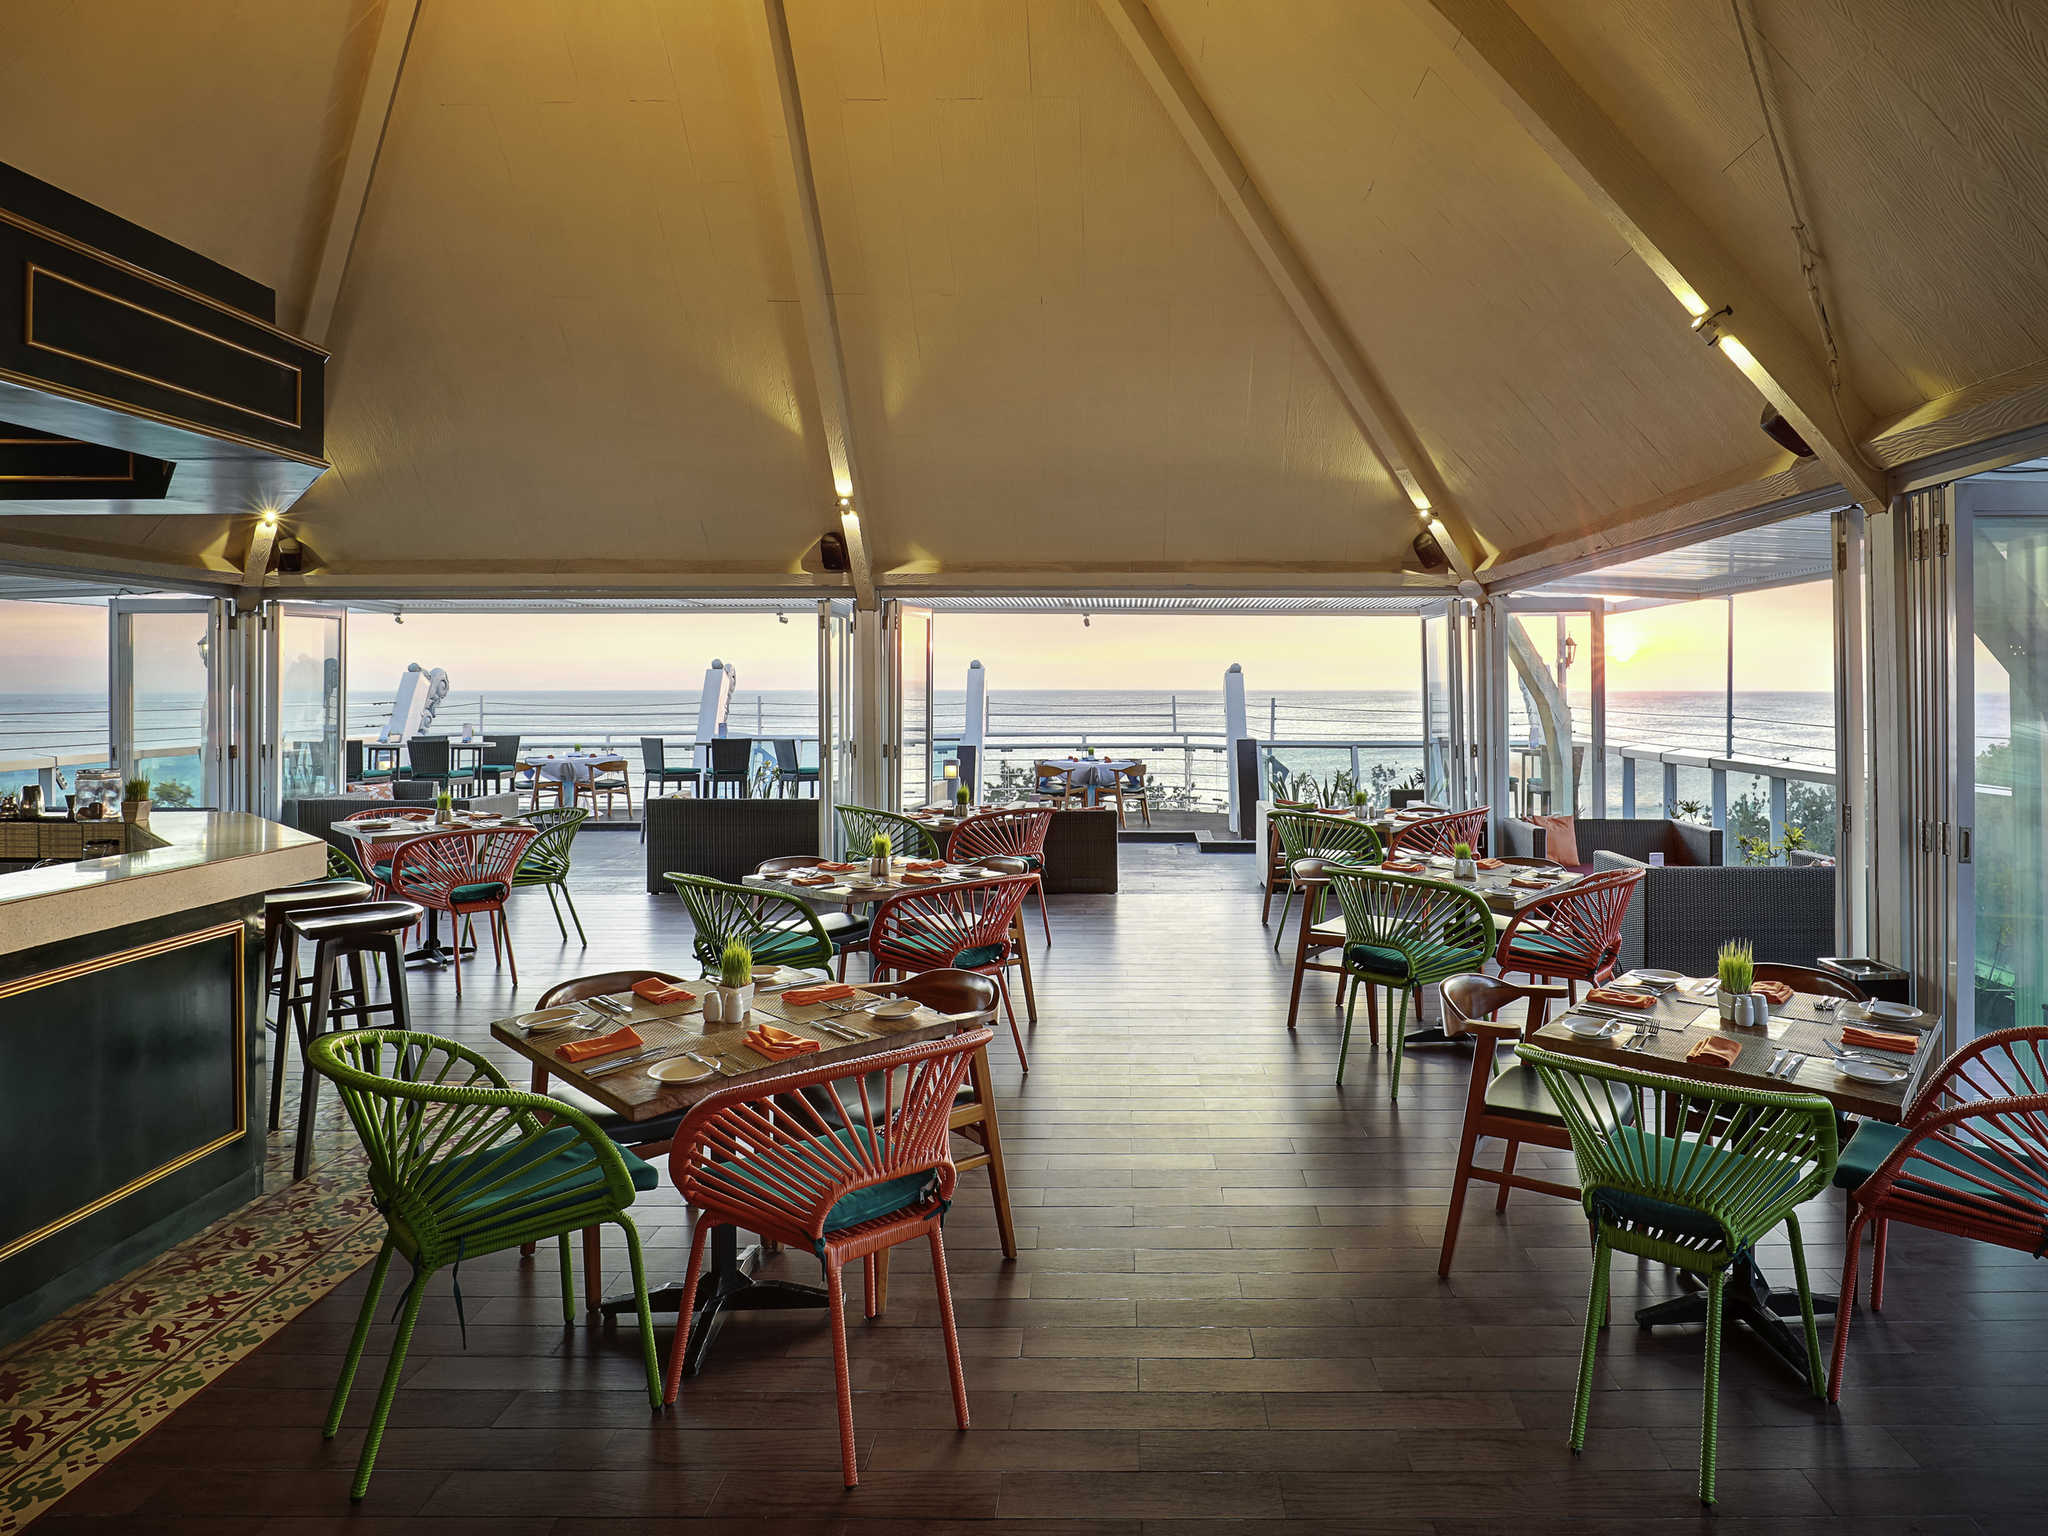 Restaurant The Kuta Beach Heritage Hotel Bali Managed By Accorhotels